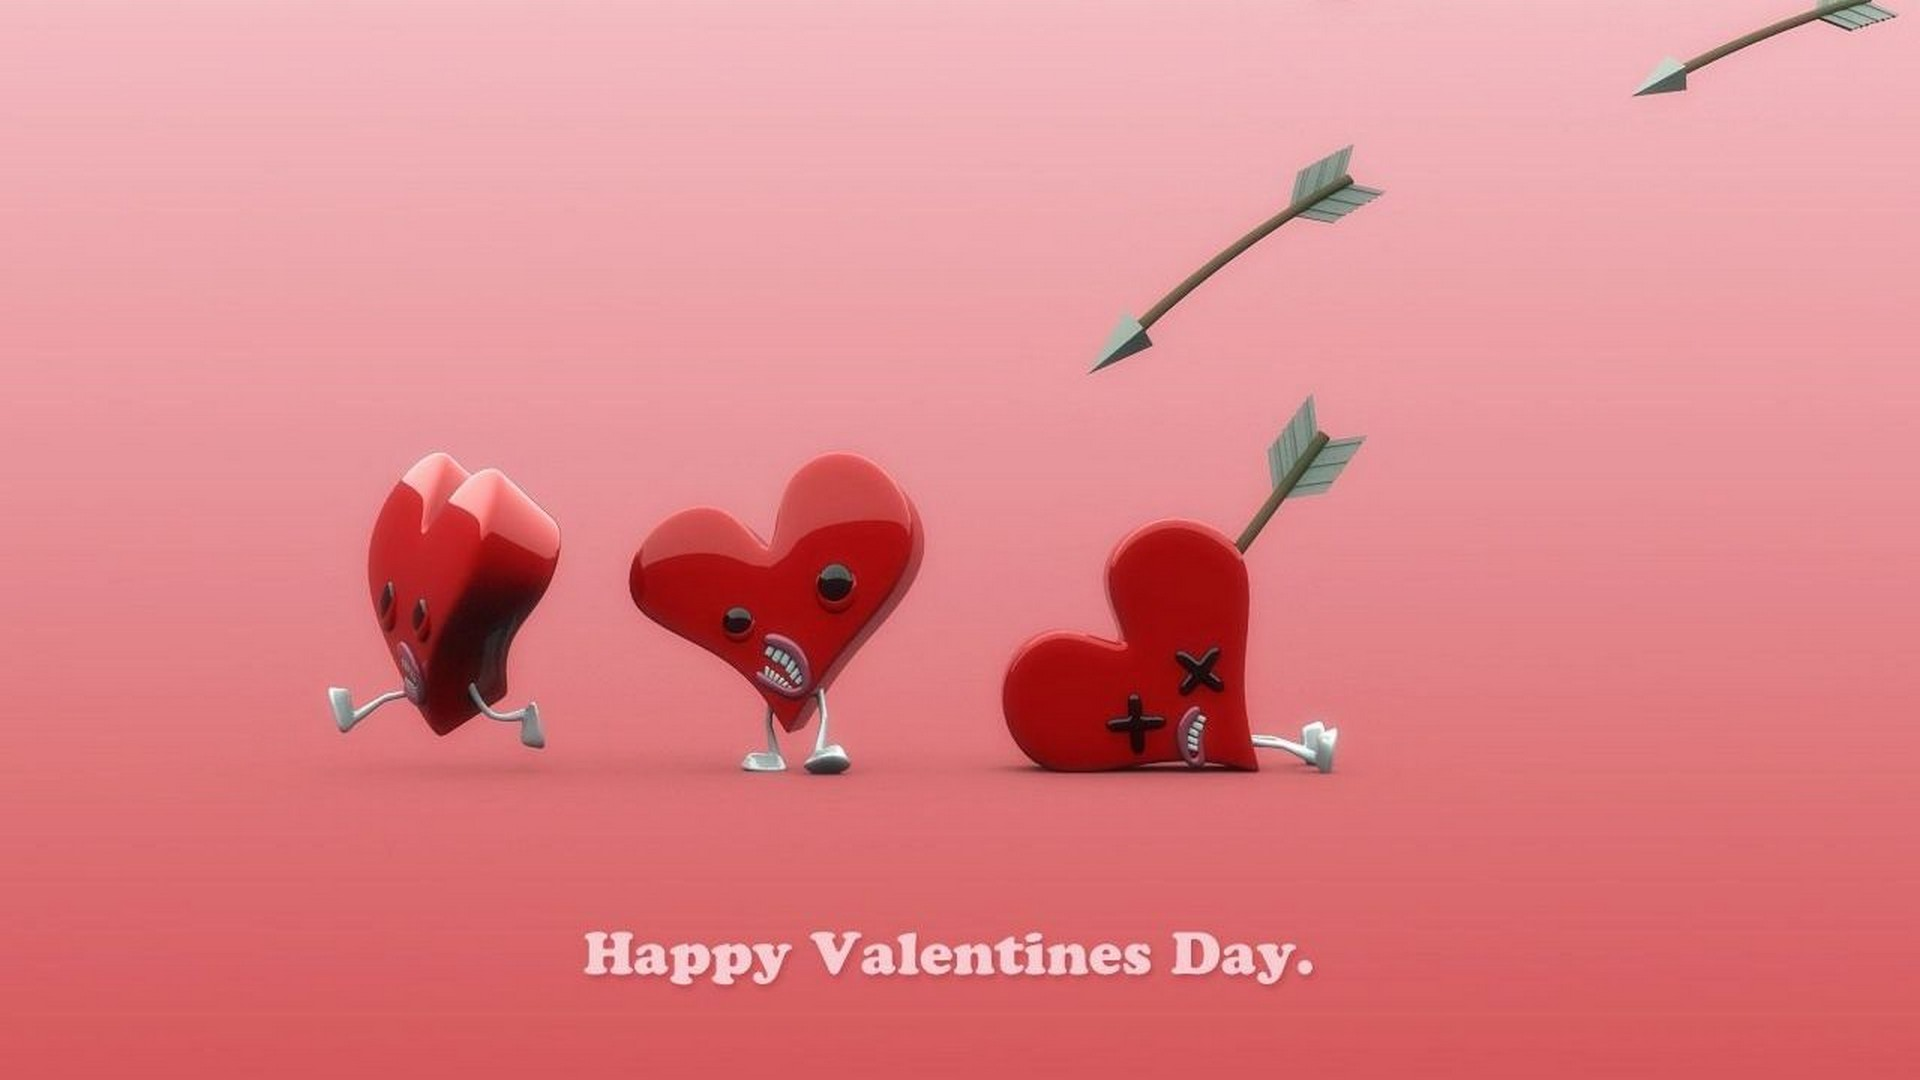 Animated Valentines Day Wallpaper 2020 Cute Wallpapers 1920x1080